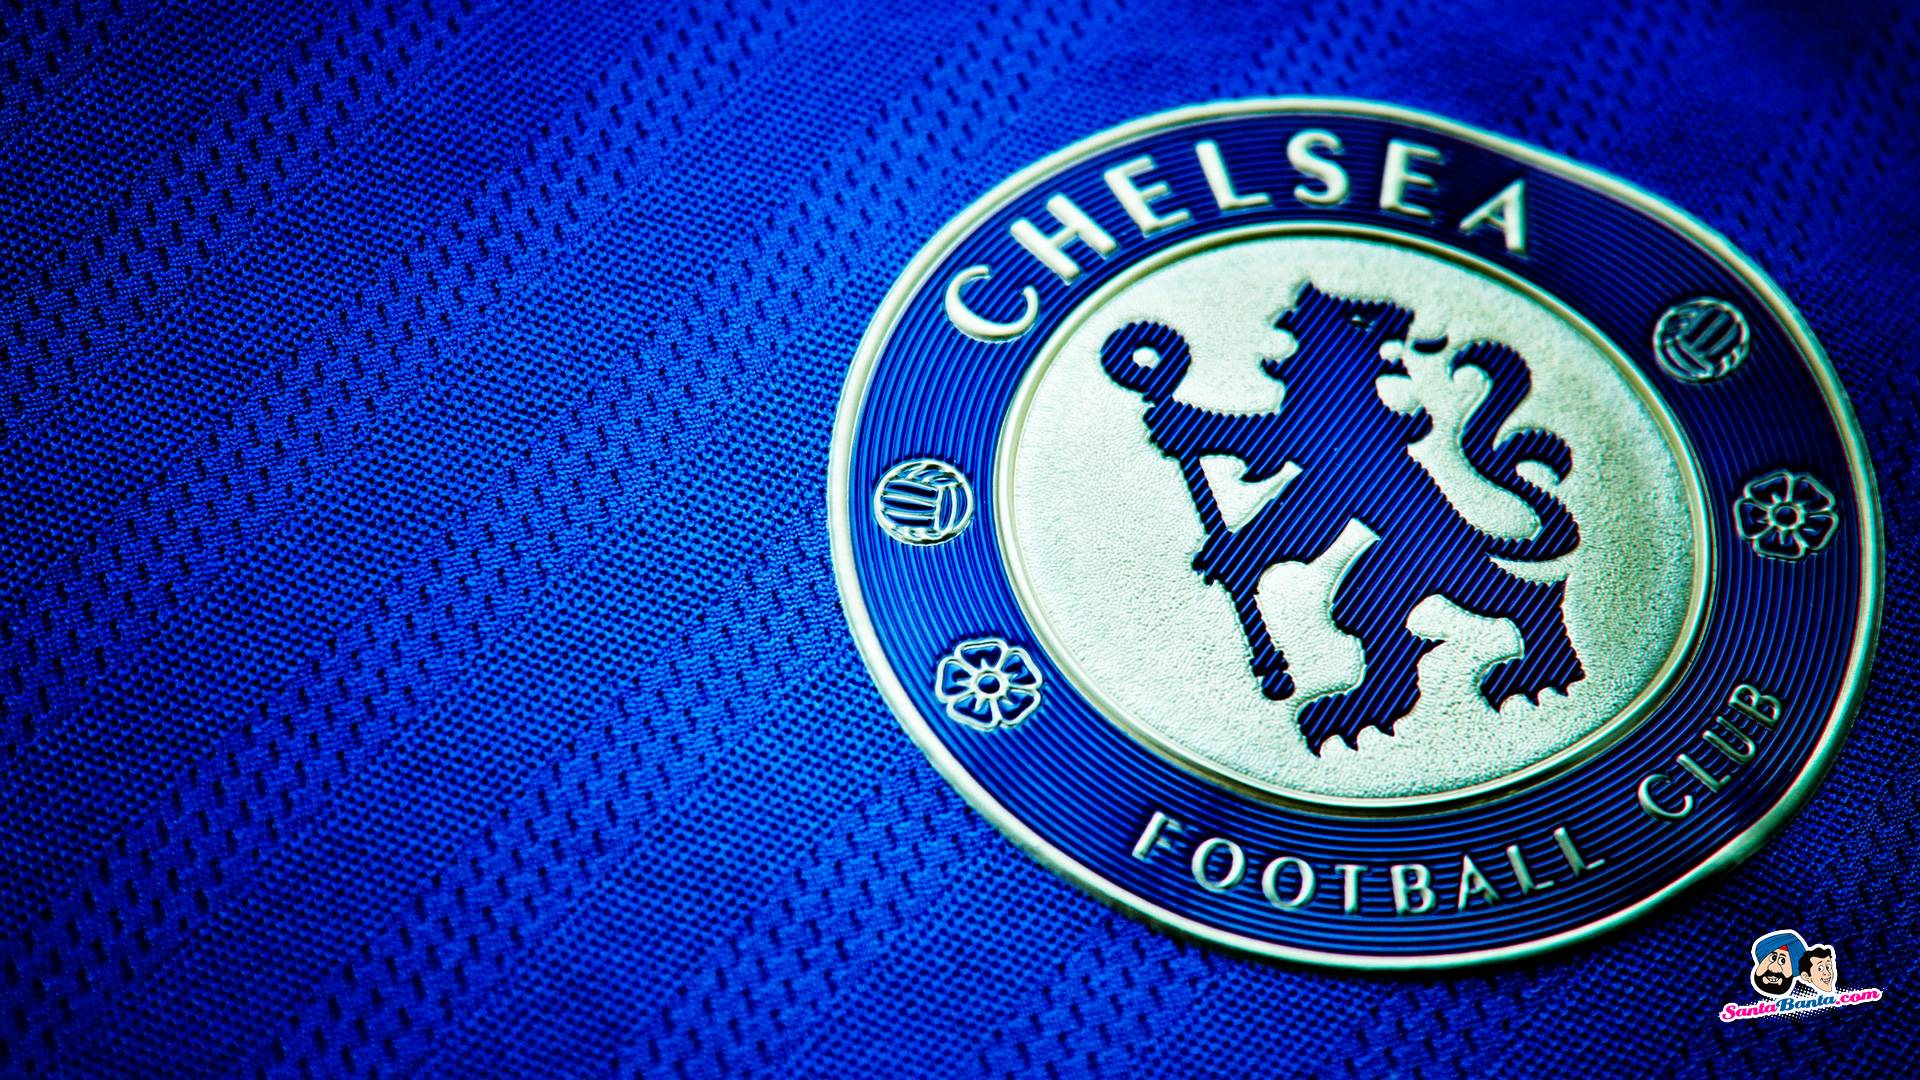 Chelsea 2017 Wallpapers - Wallpaper Cave